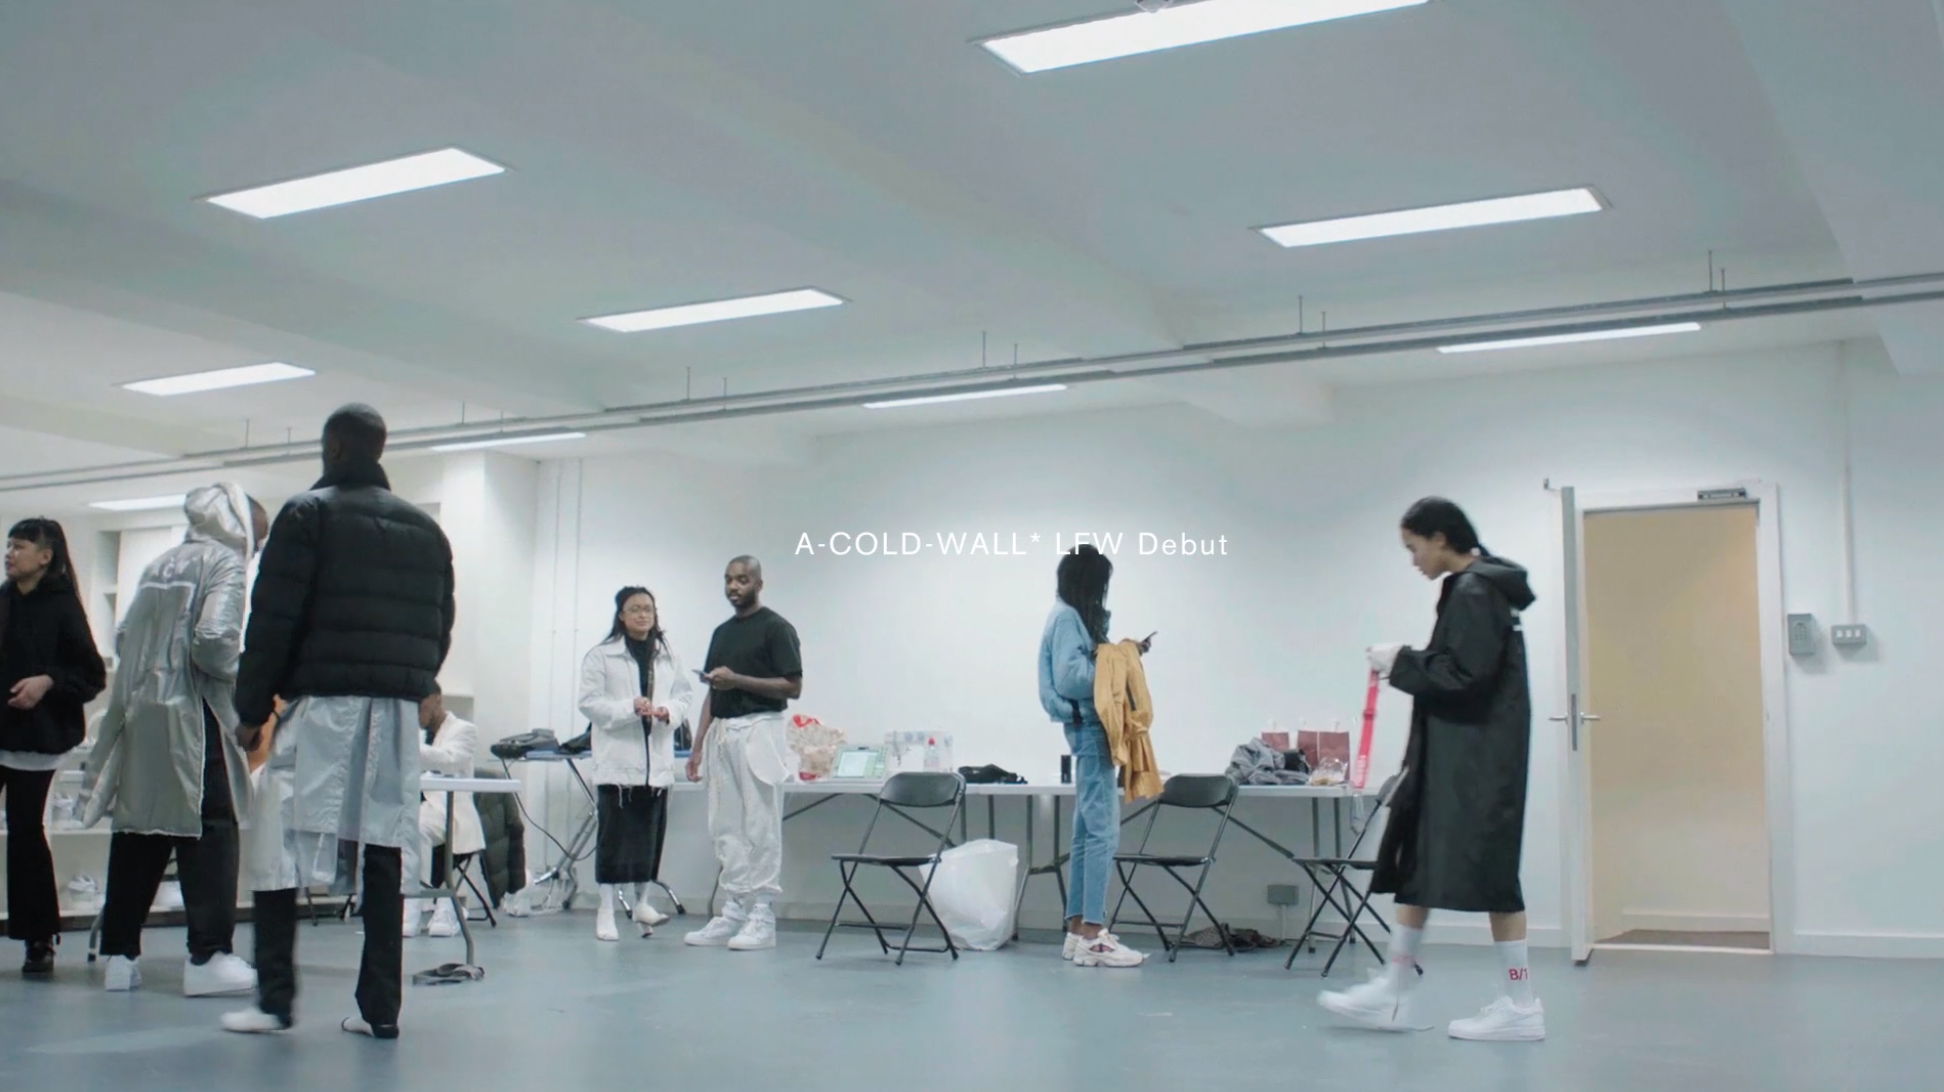 Watch Behind The Scenes At A-COLD-WALL*'s LFWM 2017 Debut